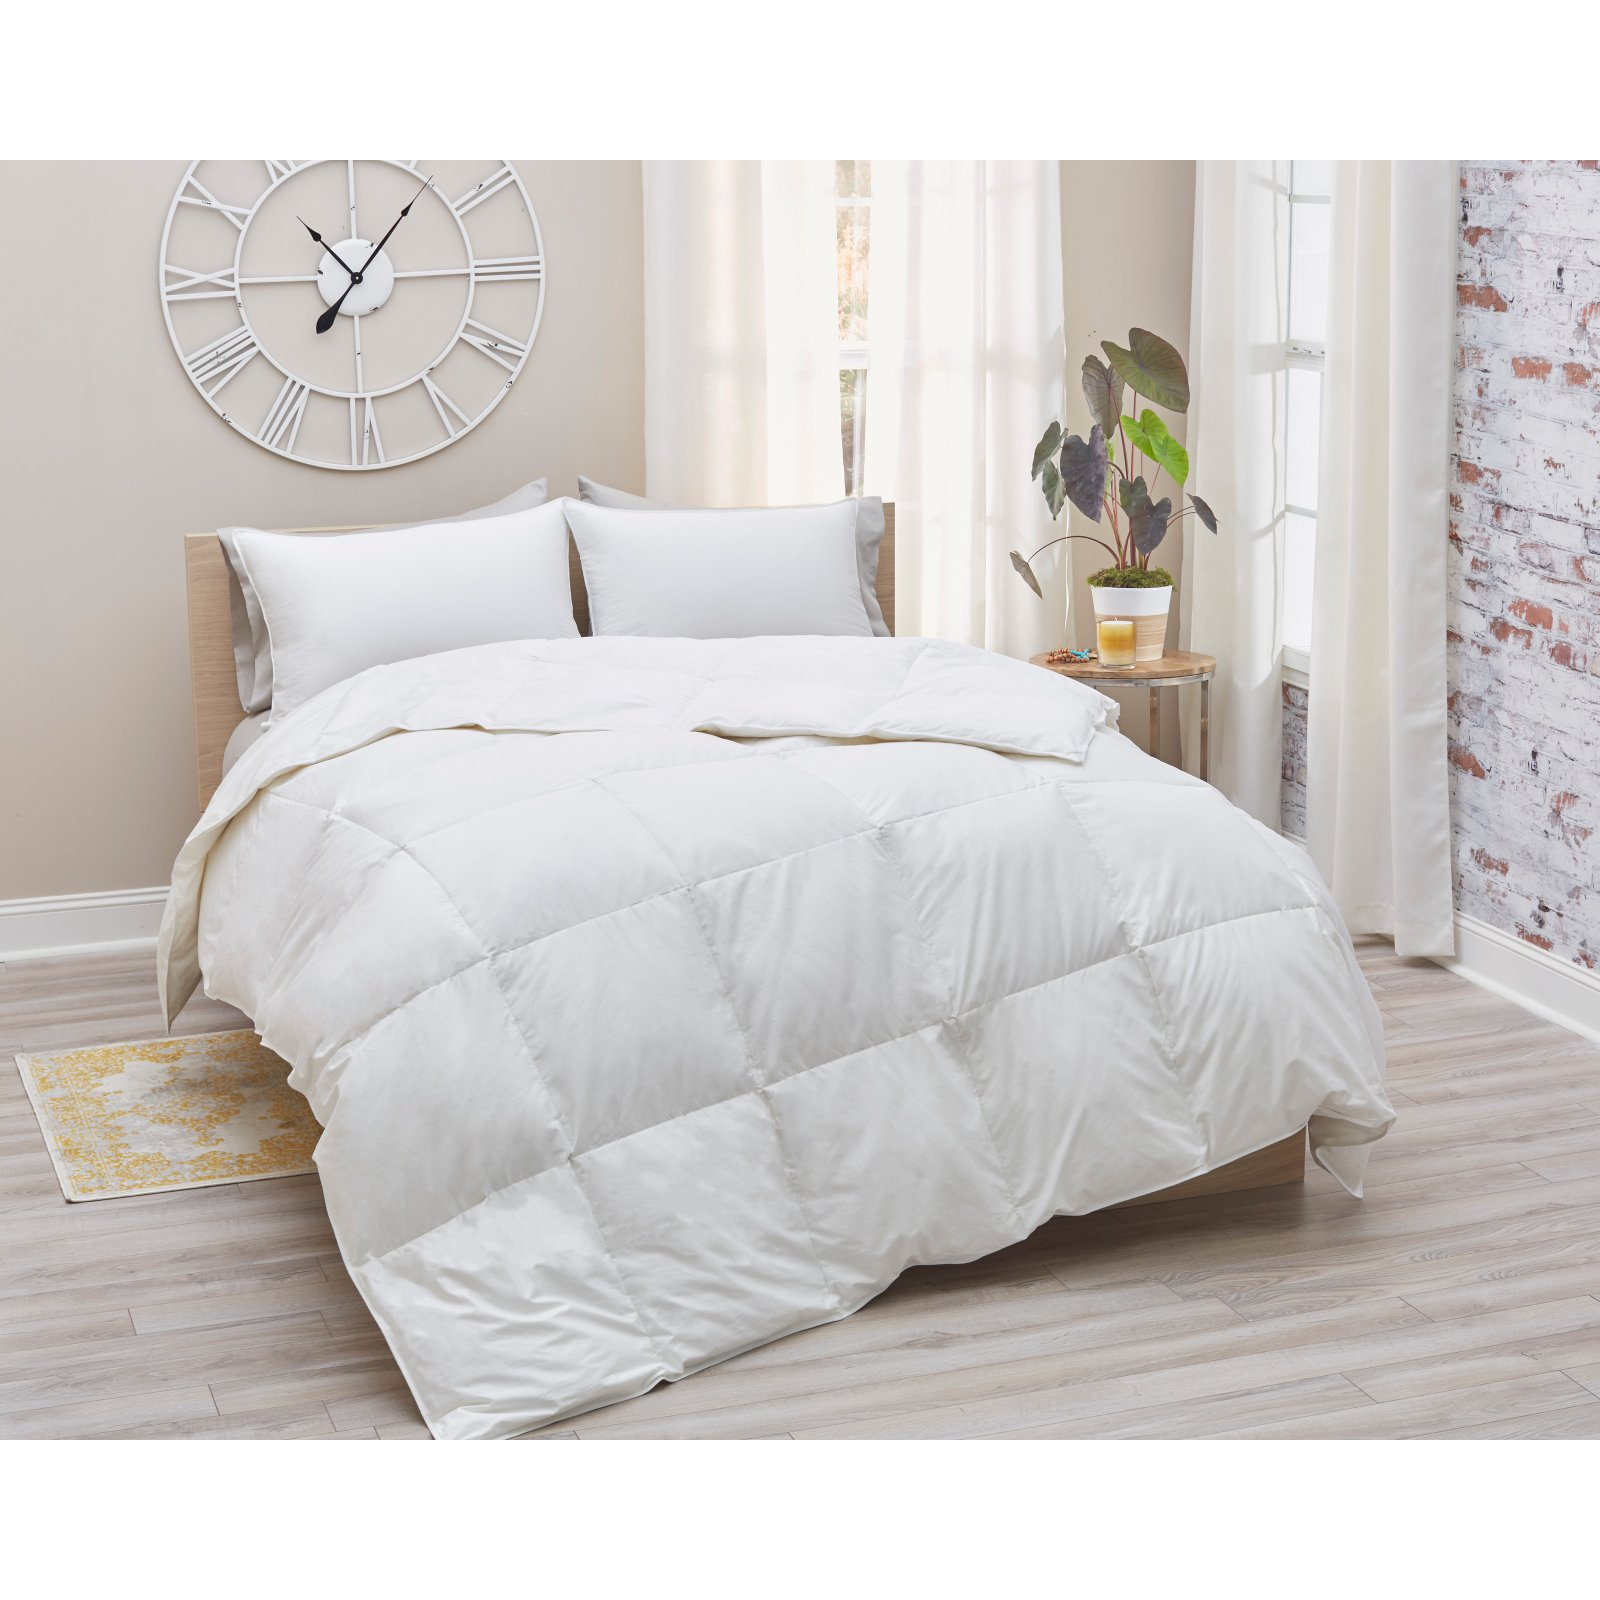 Amberly Bedding European White Goose Down Comforter - Summer Weight - King